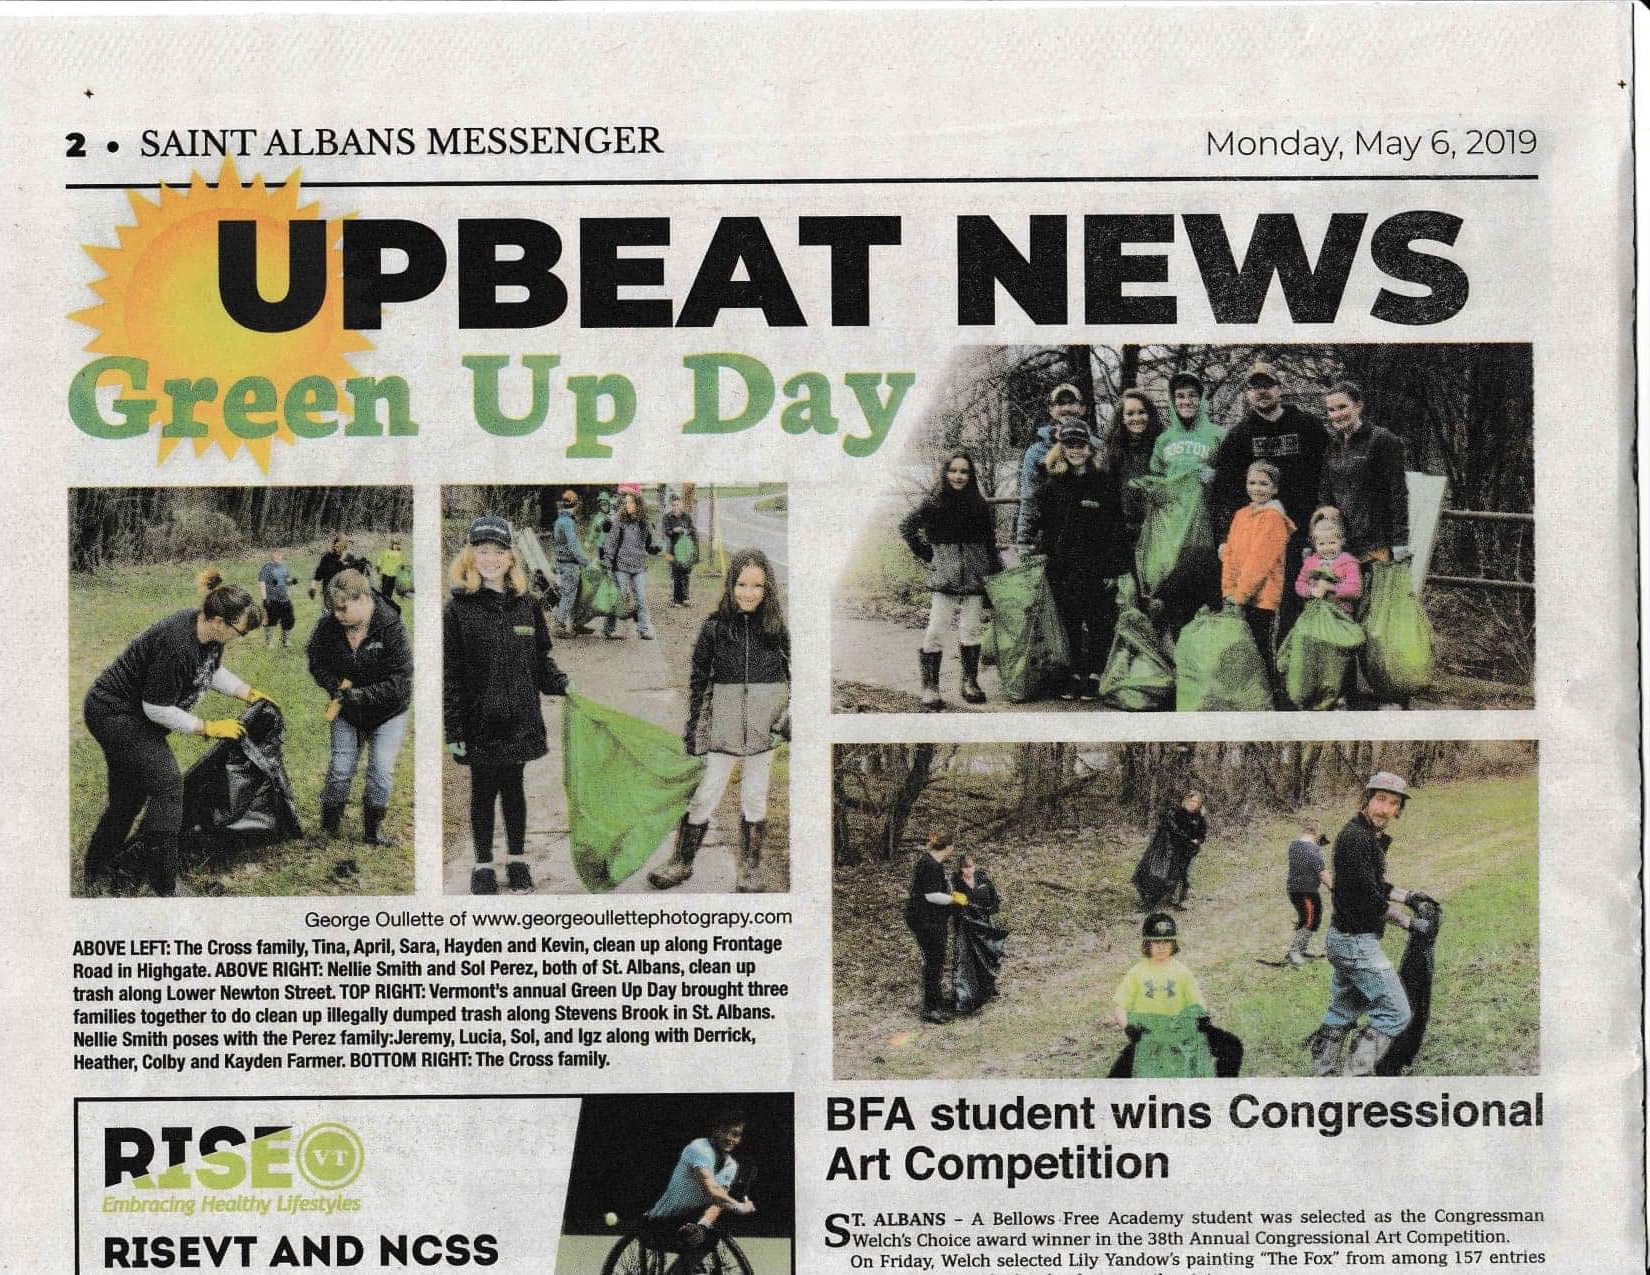 Green Up Day St. Albans 2019 - Green Up Day occurs on the first Saturday of May every year. It's a statewide event for volunteers all over Vermont to remove litter from roadsides and public spaces. 247 towns and cities participate. This is a wonderful opportunity to teach children how to care for the environment. Our team is pictured top right. Great job to all participants across the city.